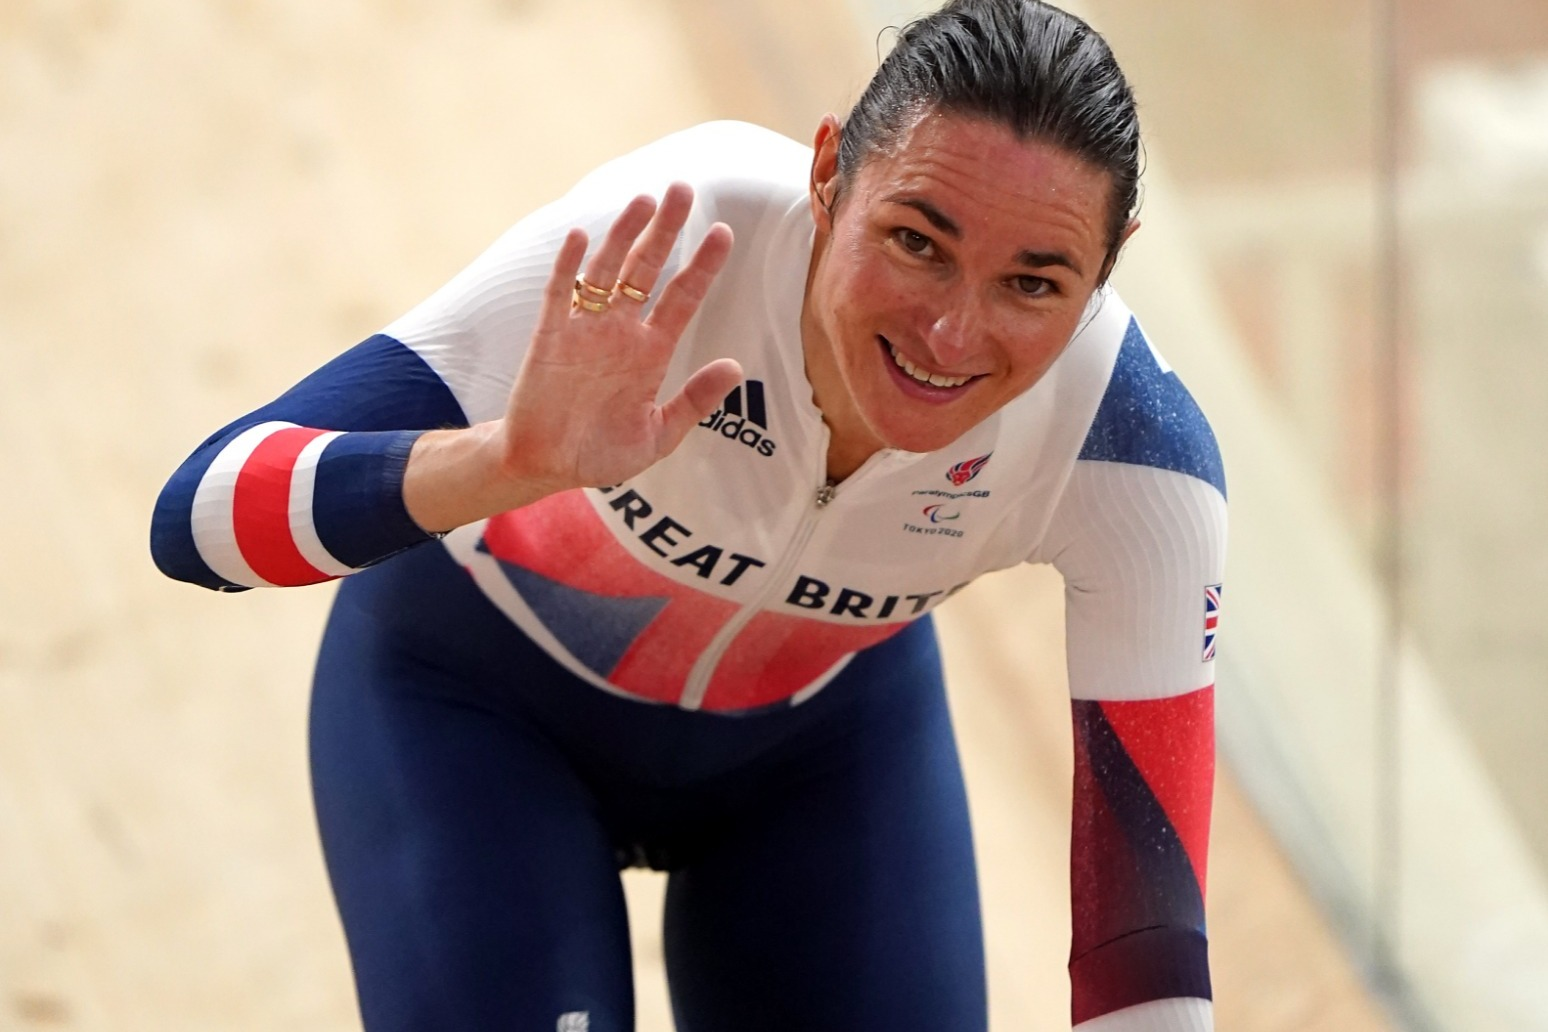 Sarah Storey storms to Great Britain's first gold of the Tokyo Paralympics